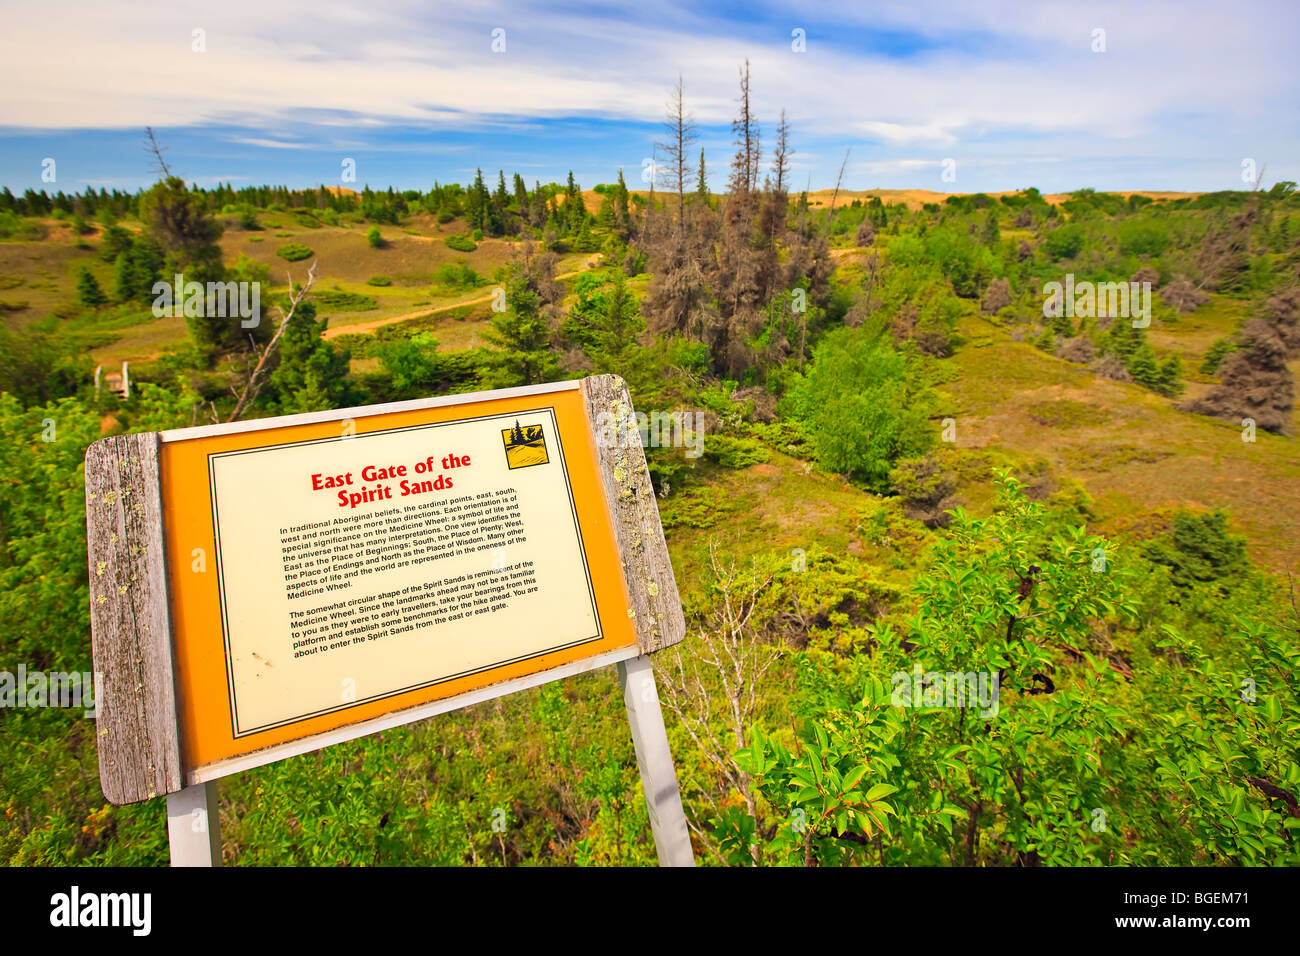 Interpretive sign at the East Gate of the Spirit Sands Trail, Spruce Woods Provincial Park, Manitoba, Canada. - Stock Image